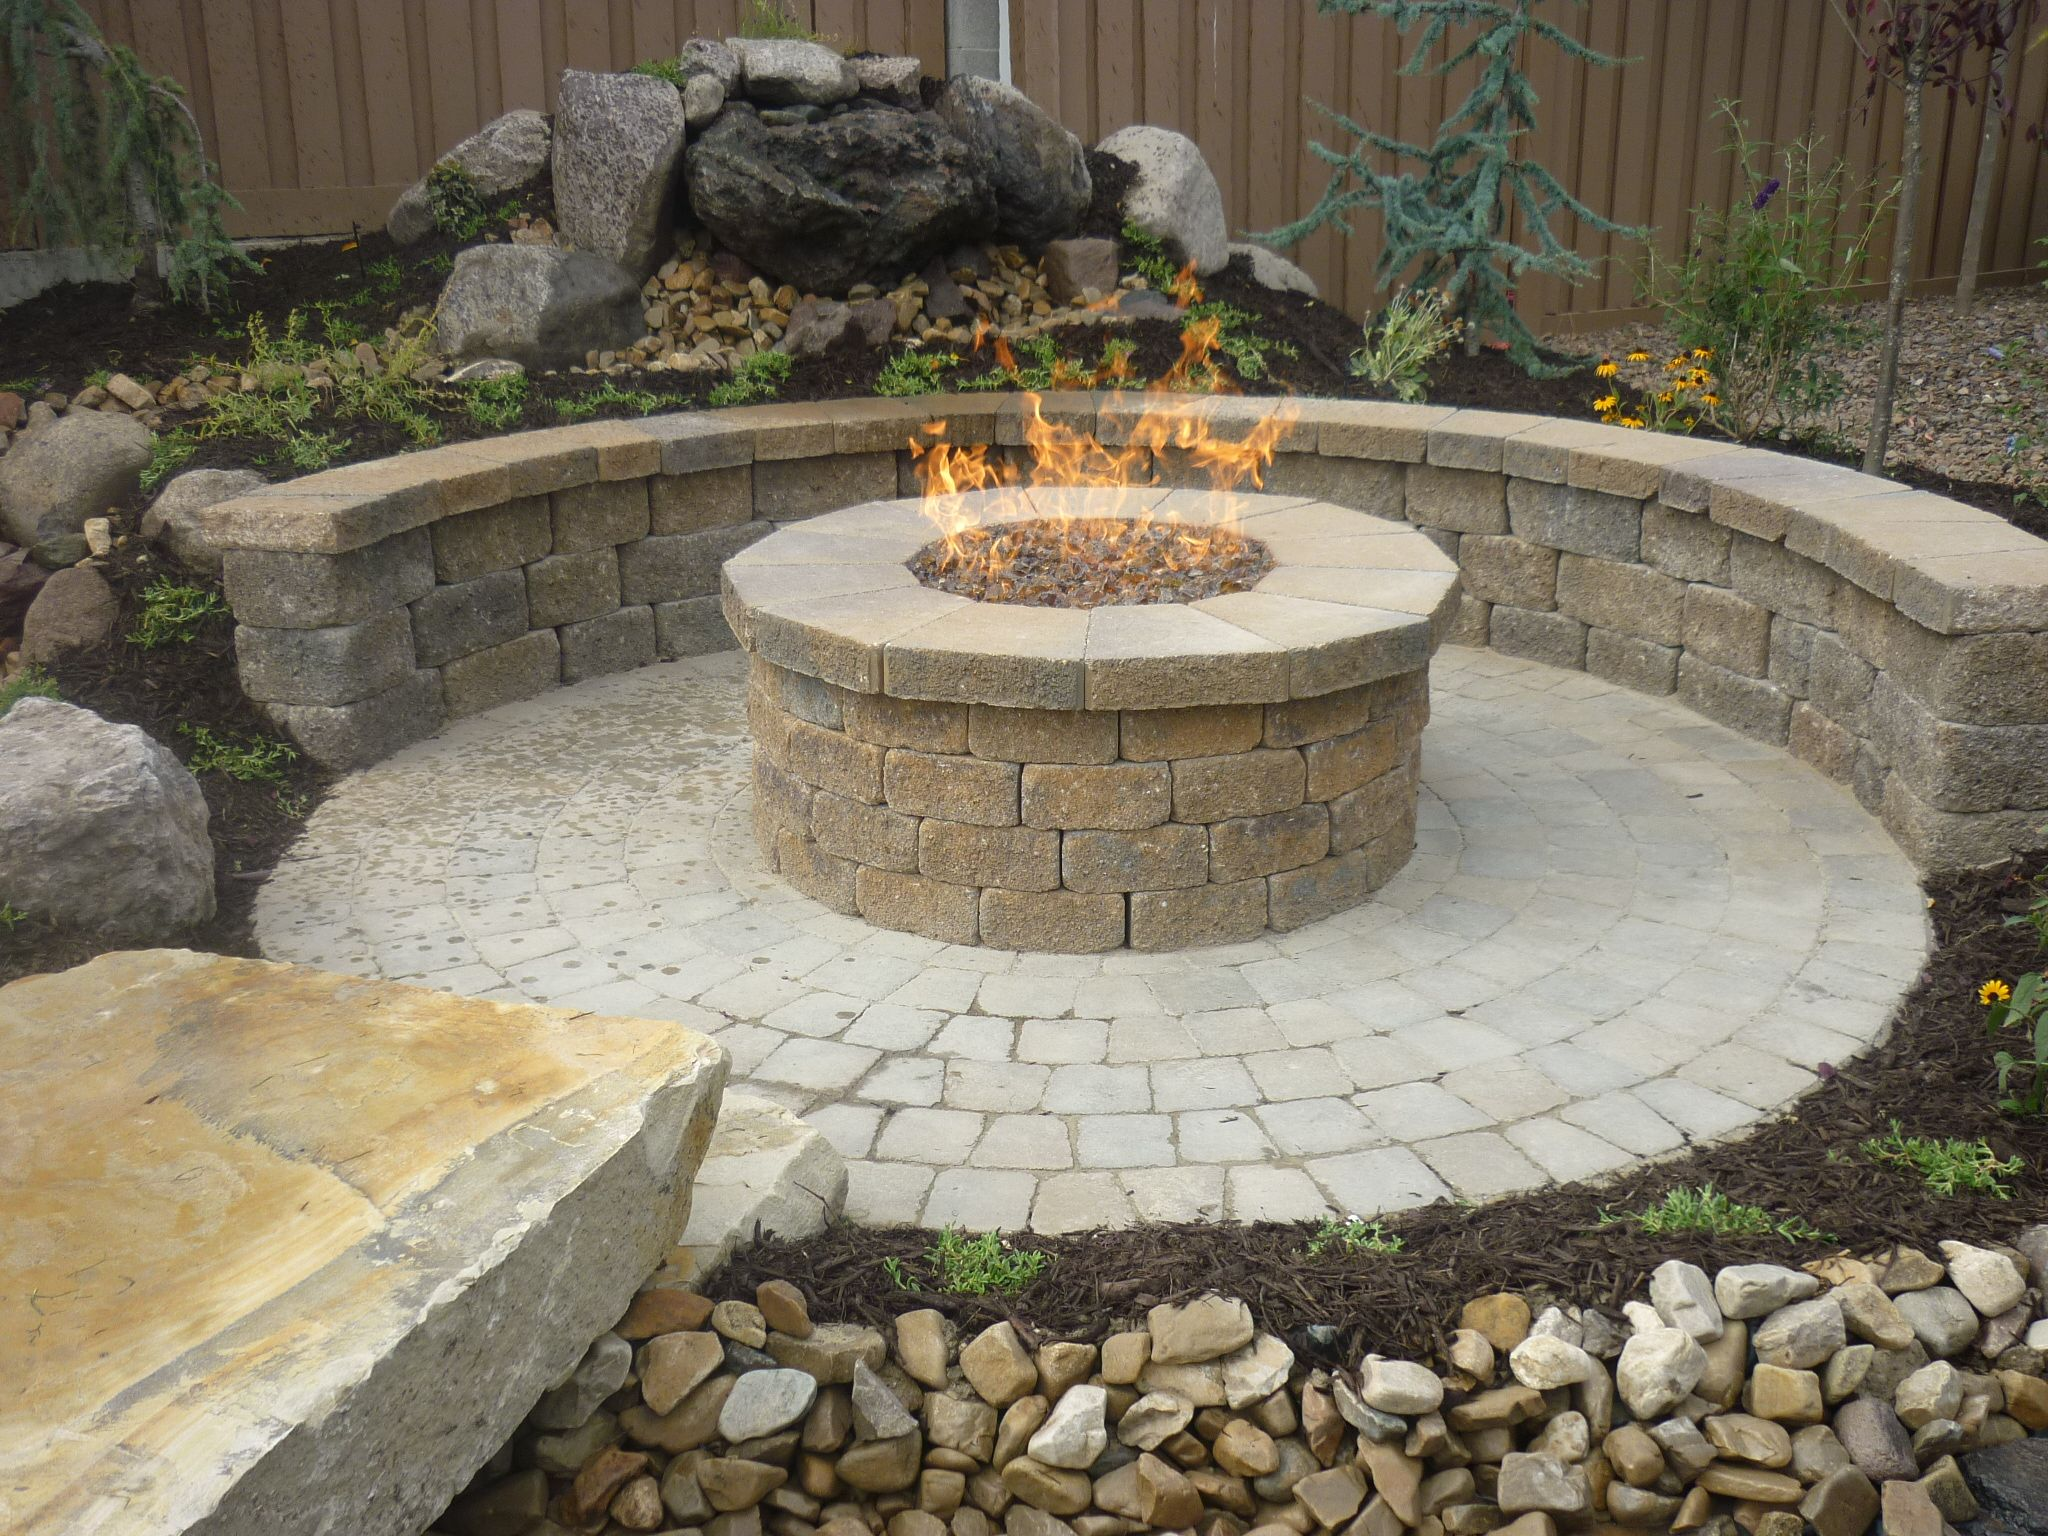 gas fire pits for a patio | circle, paver Wall in country ... on Paver Patio Designs With Fire Pit id=11359